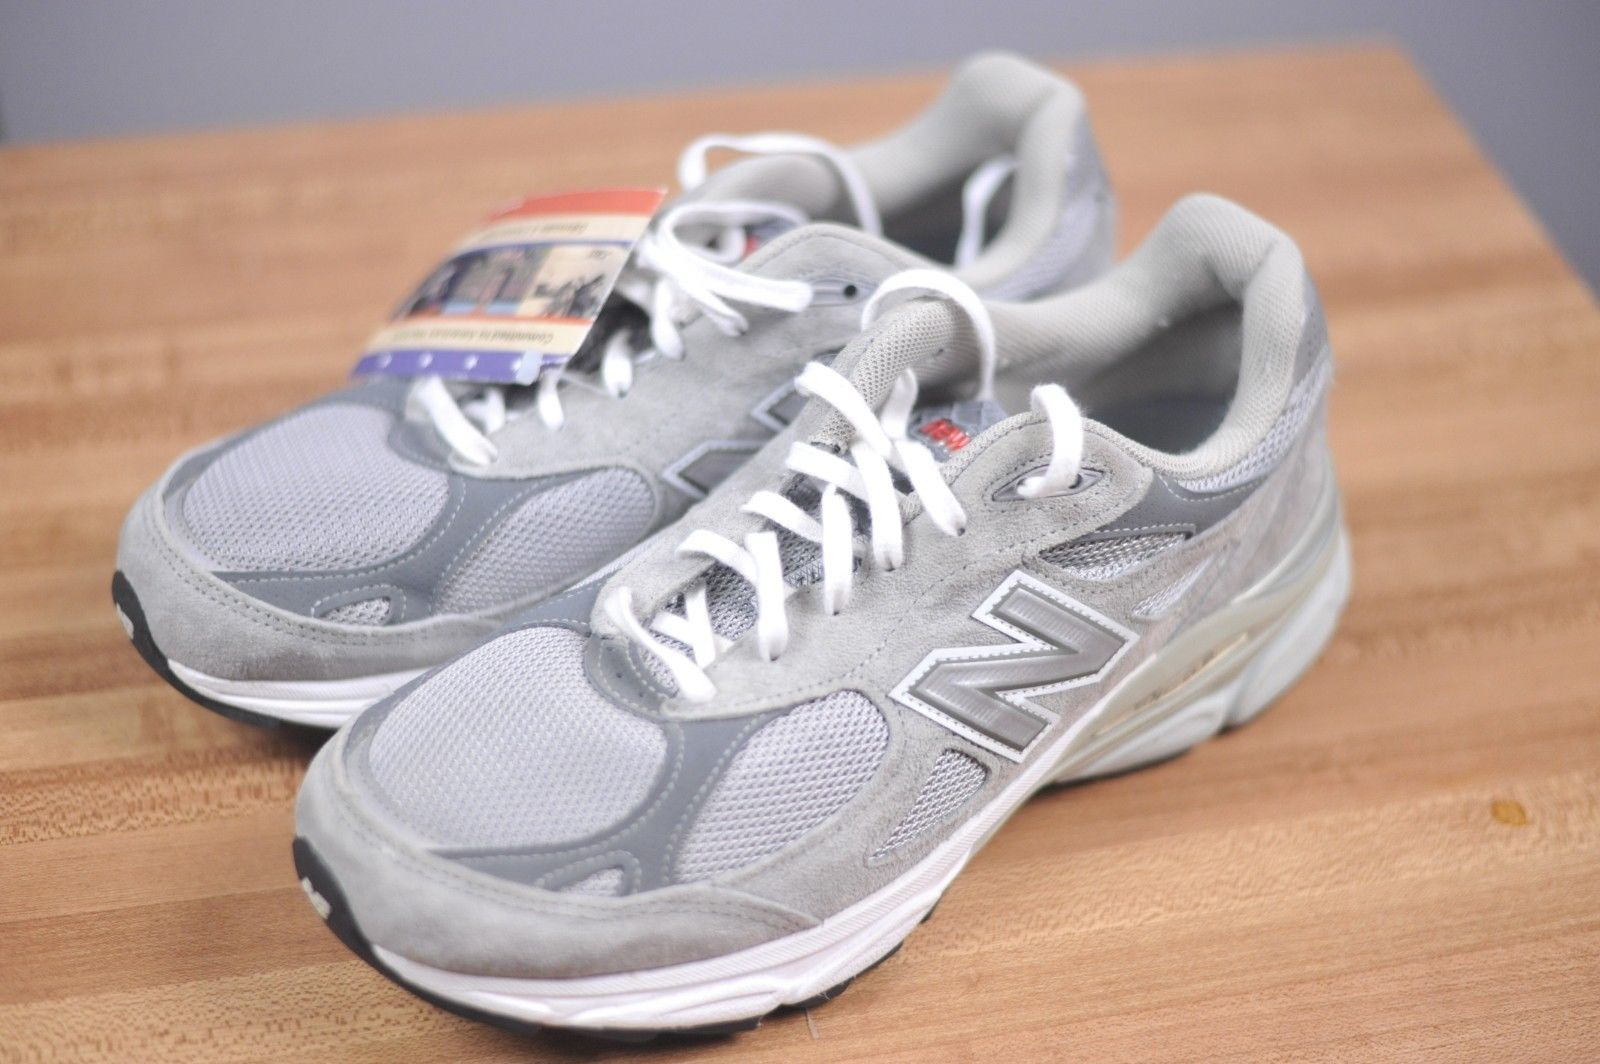 4b07a580de4b9 NIB Men's New Balance 993 Made In USA Running Shoes Sneakers All  Sizes+Widths | eBay